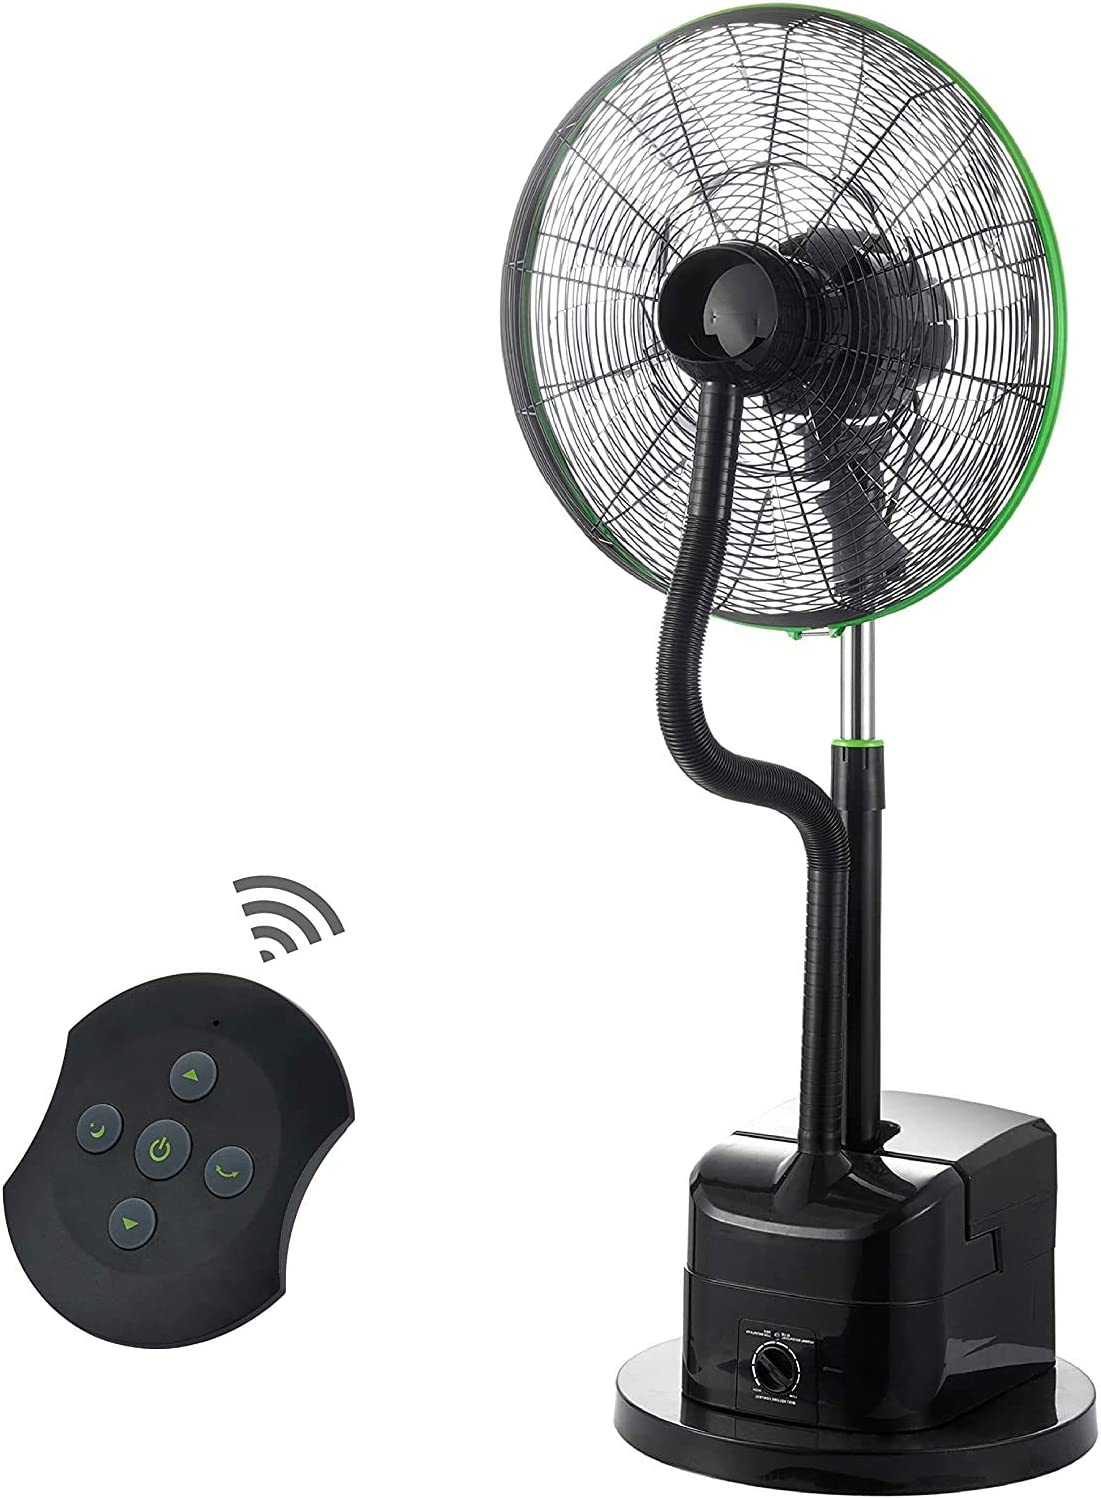 Free shipping anywhere in the nation Simple Deluxe 18 Inch Misting Adjustable Oscillating Seasonal Wrap Introduction fan height